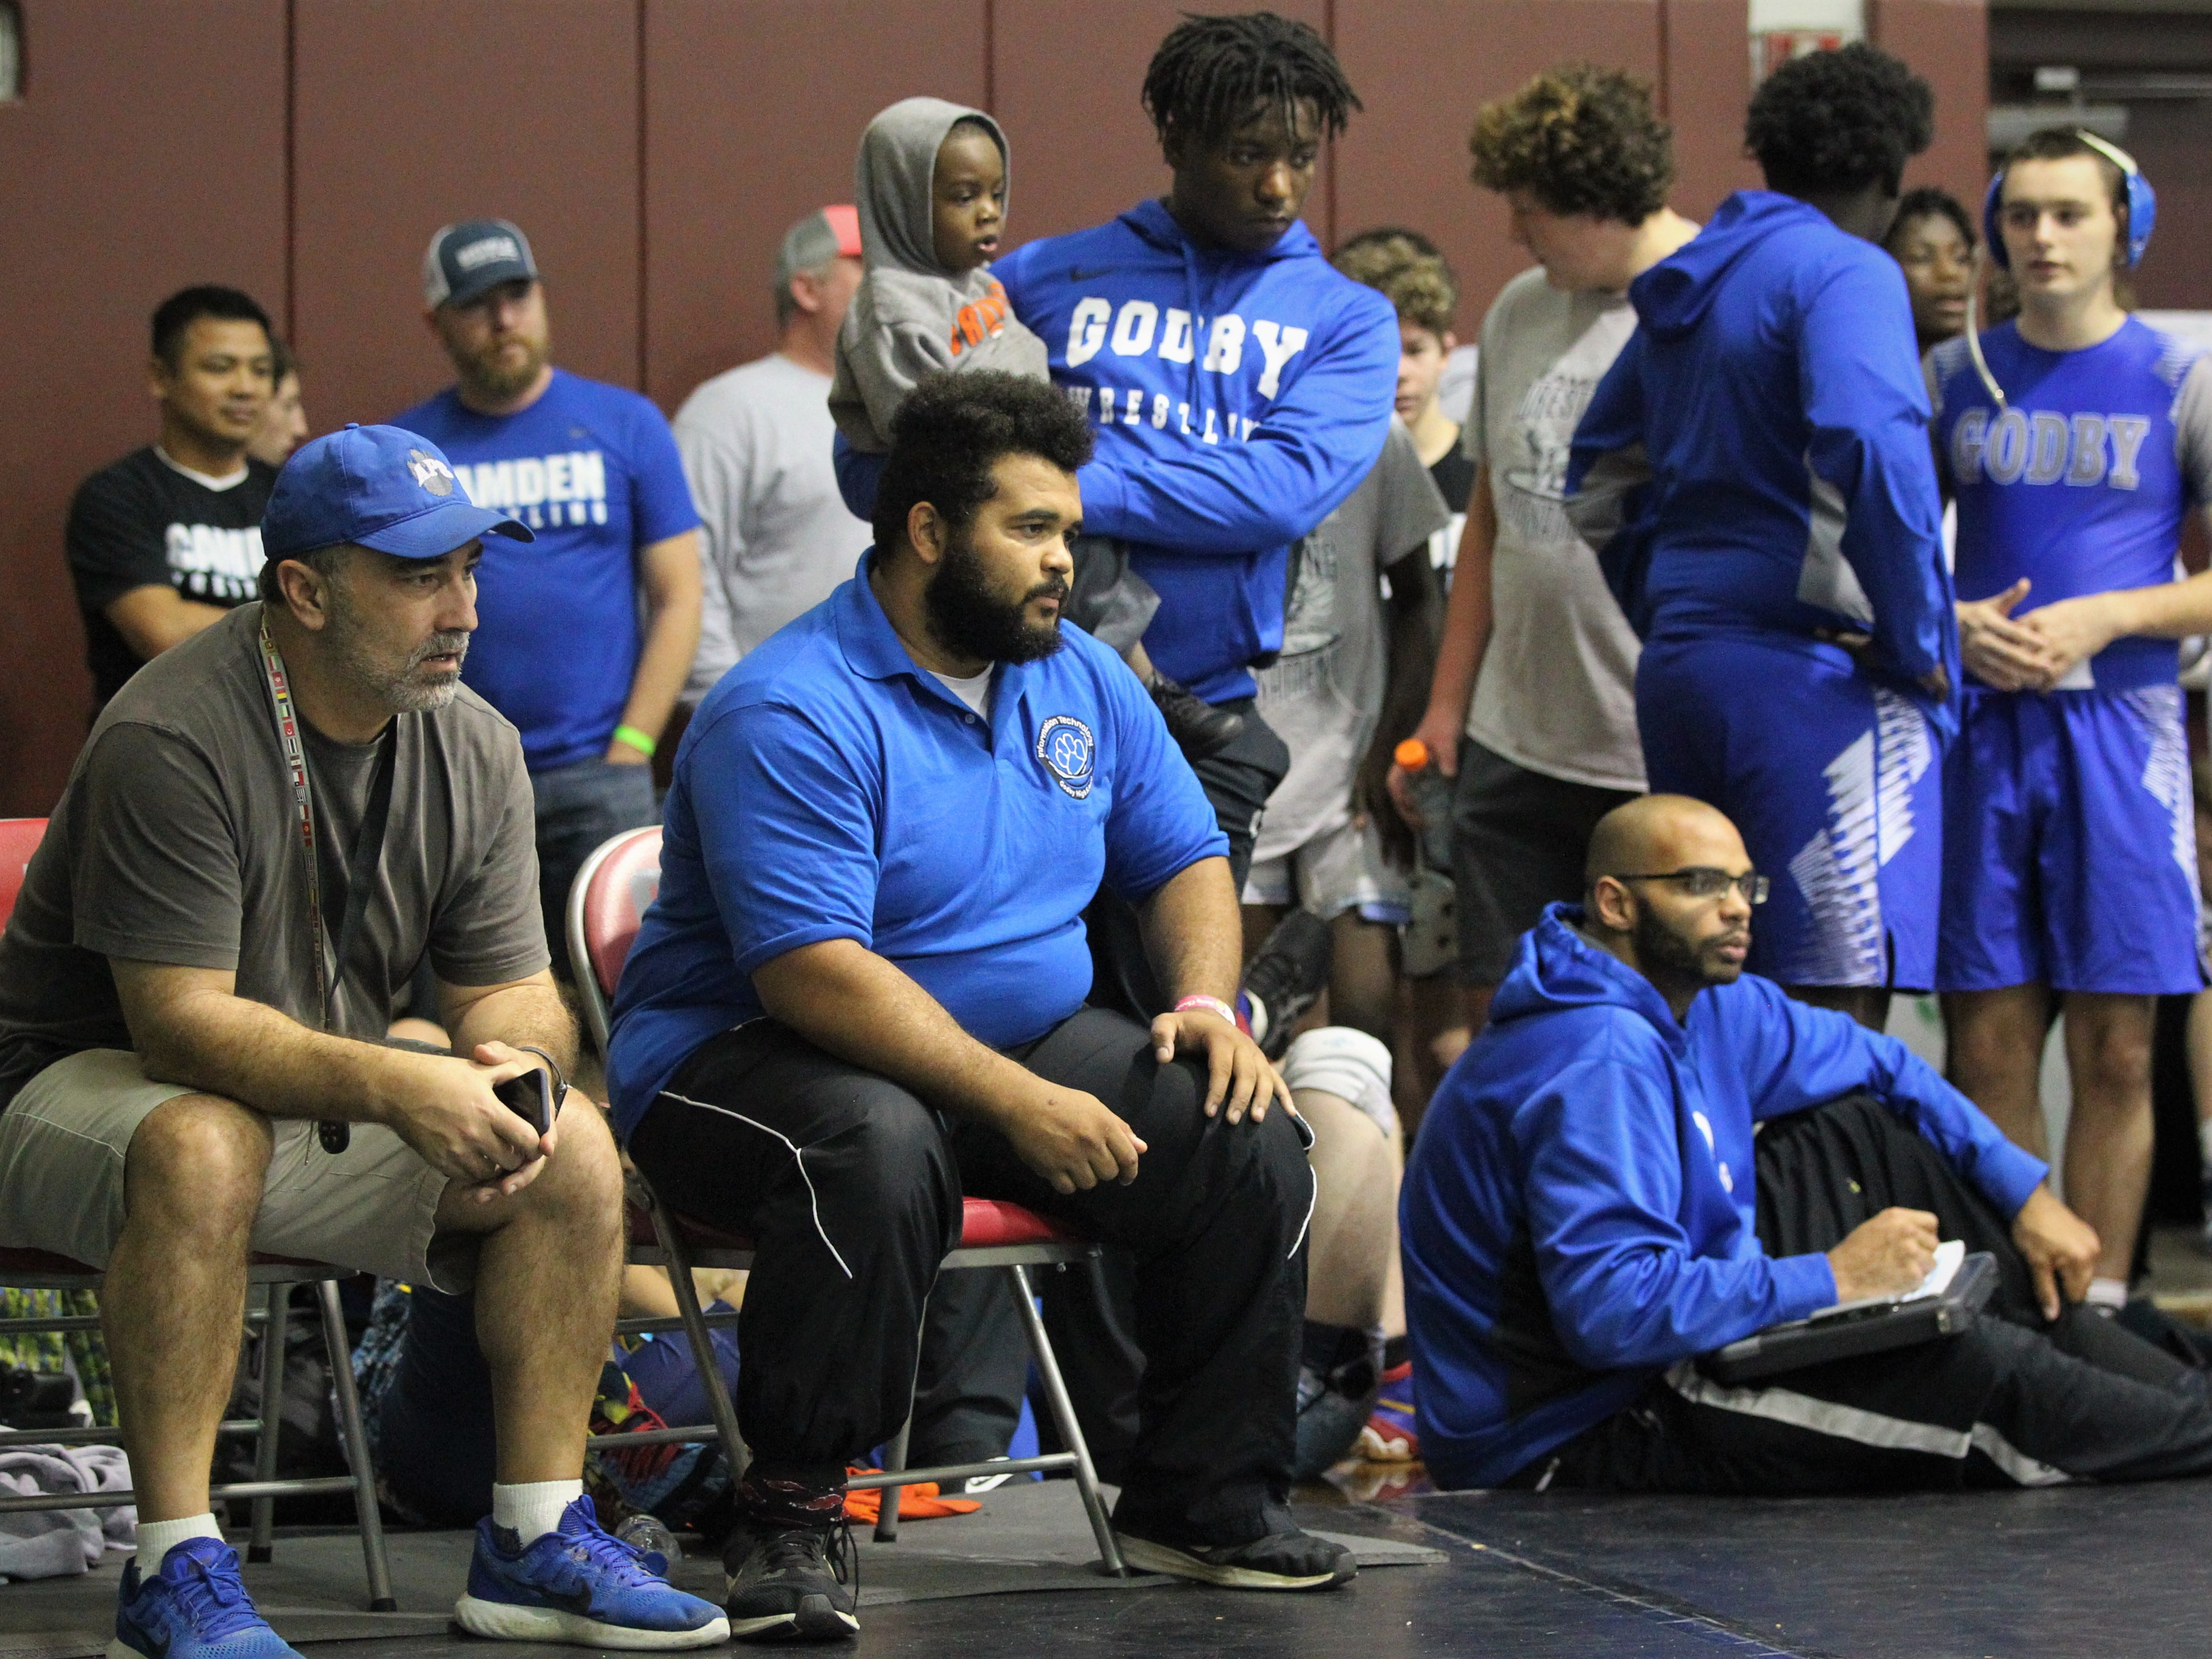 Godby wrestling coach John Wainwright, MaShawn Knight, and Jacob Fahrenkrug watch one of their wrestlers during the 2018 Capital City Classic wrestling tournament at Chiles High School.